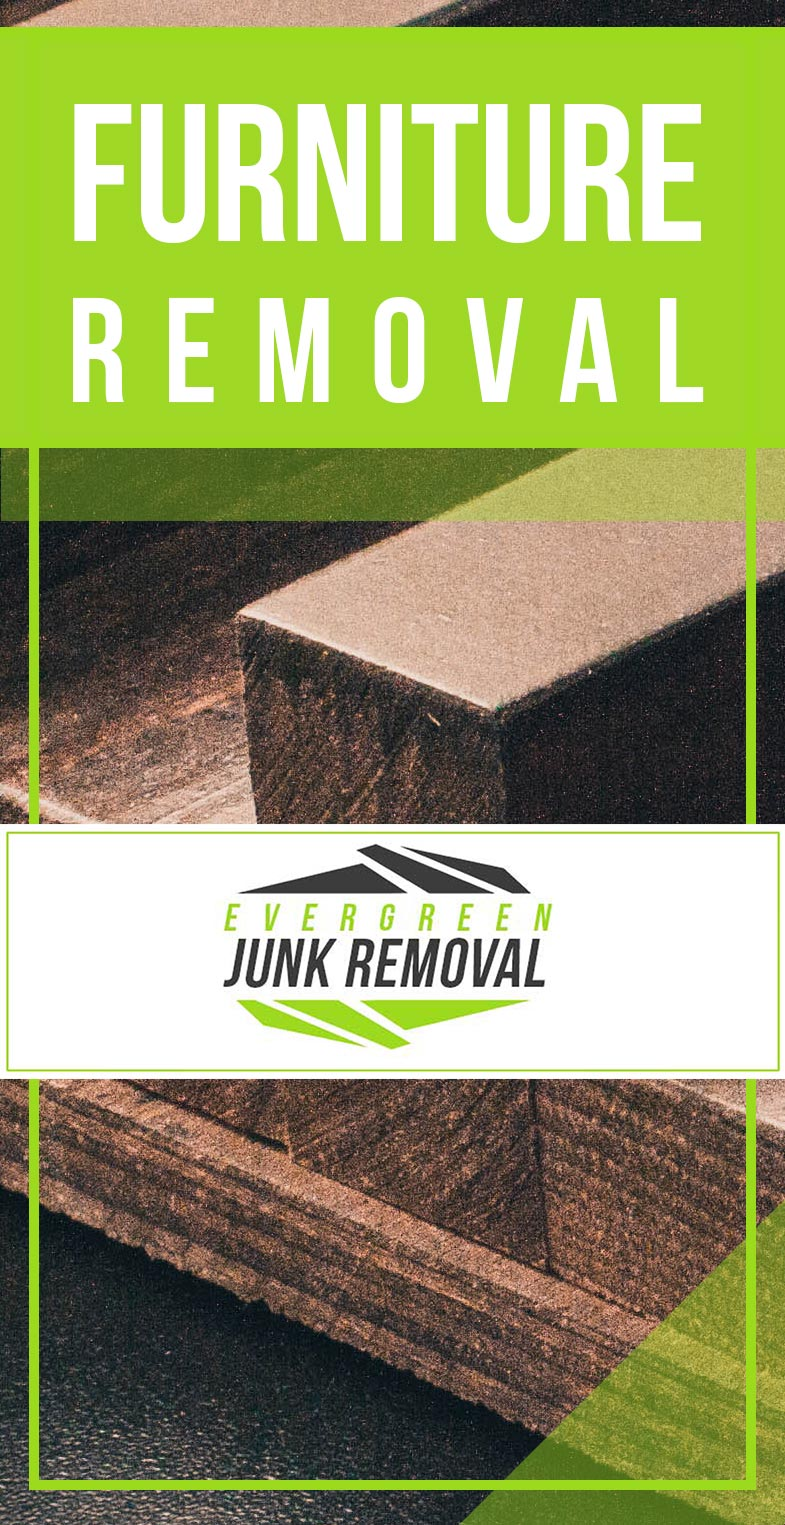 Monroe Furniture Removal